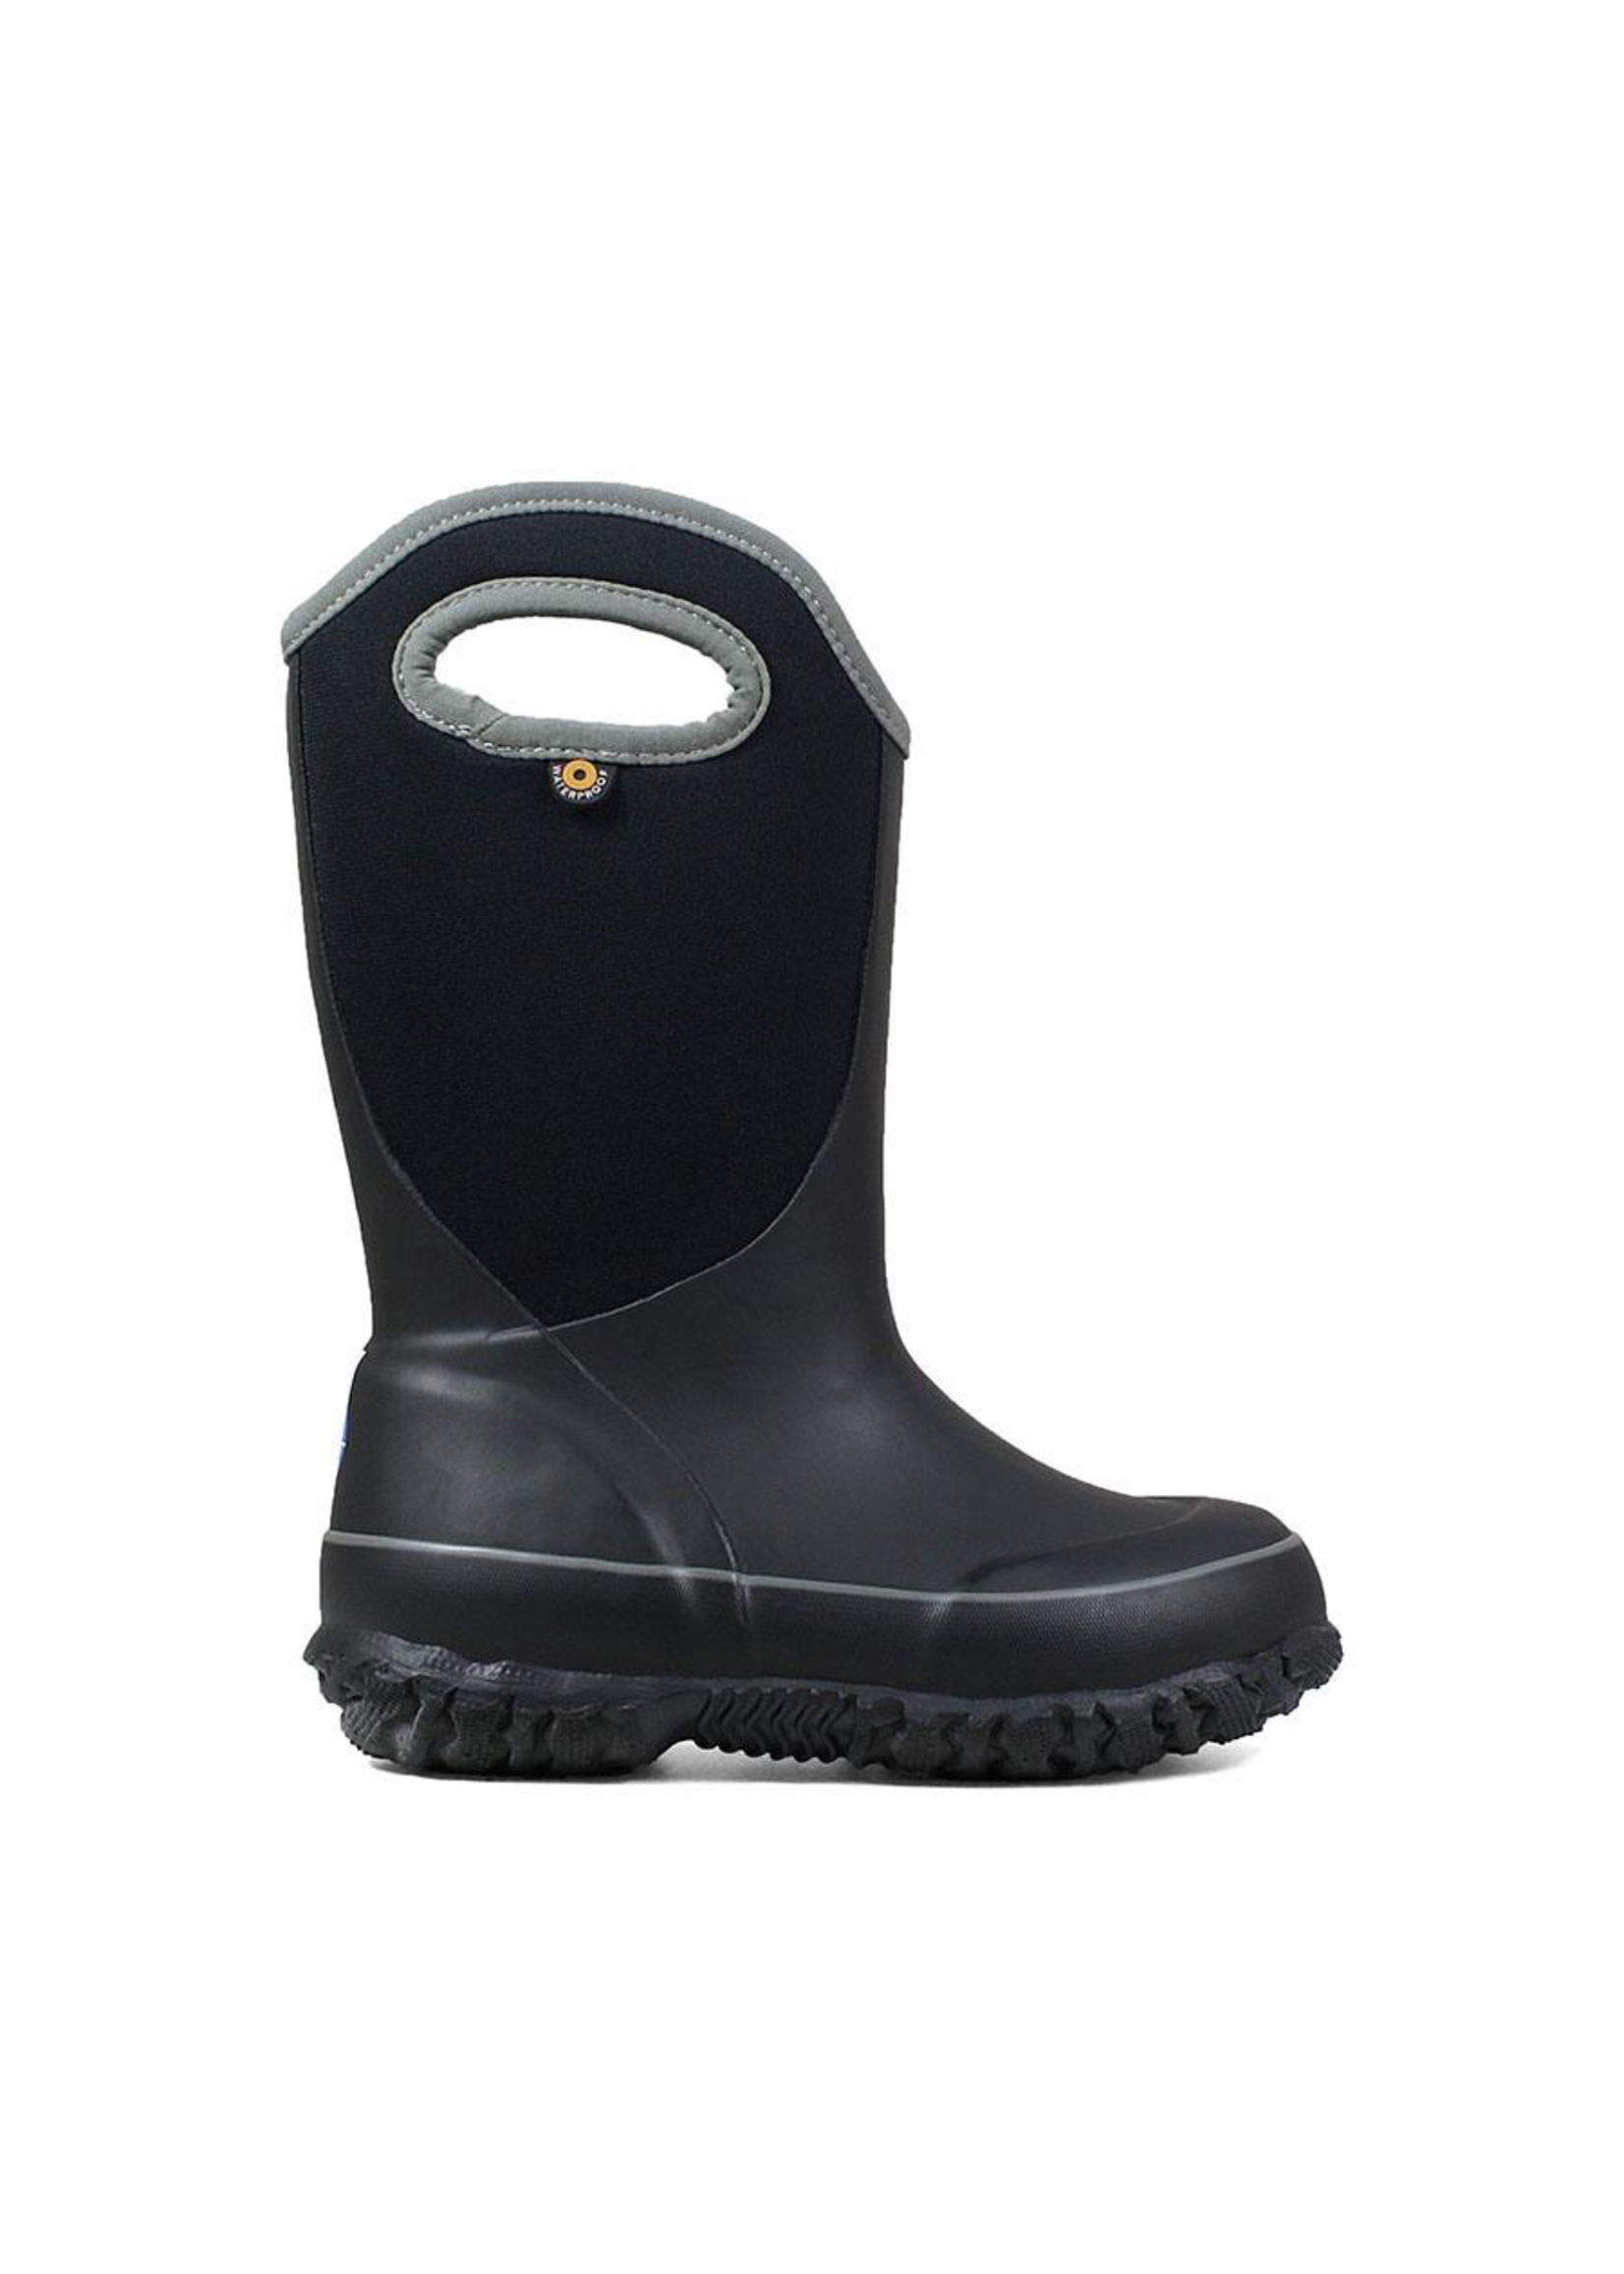 Bogs Bogs, Kids' Slushie Solid Insulated Boots